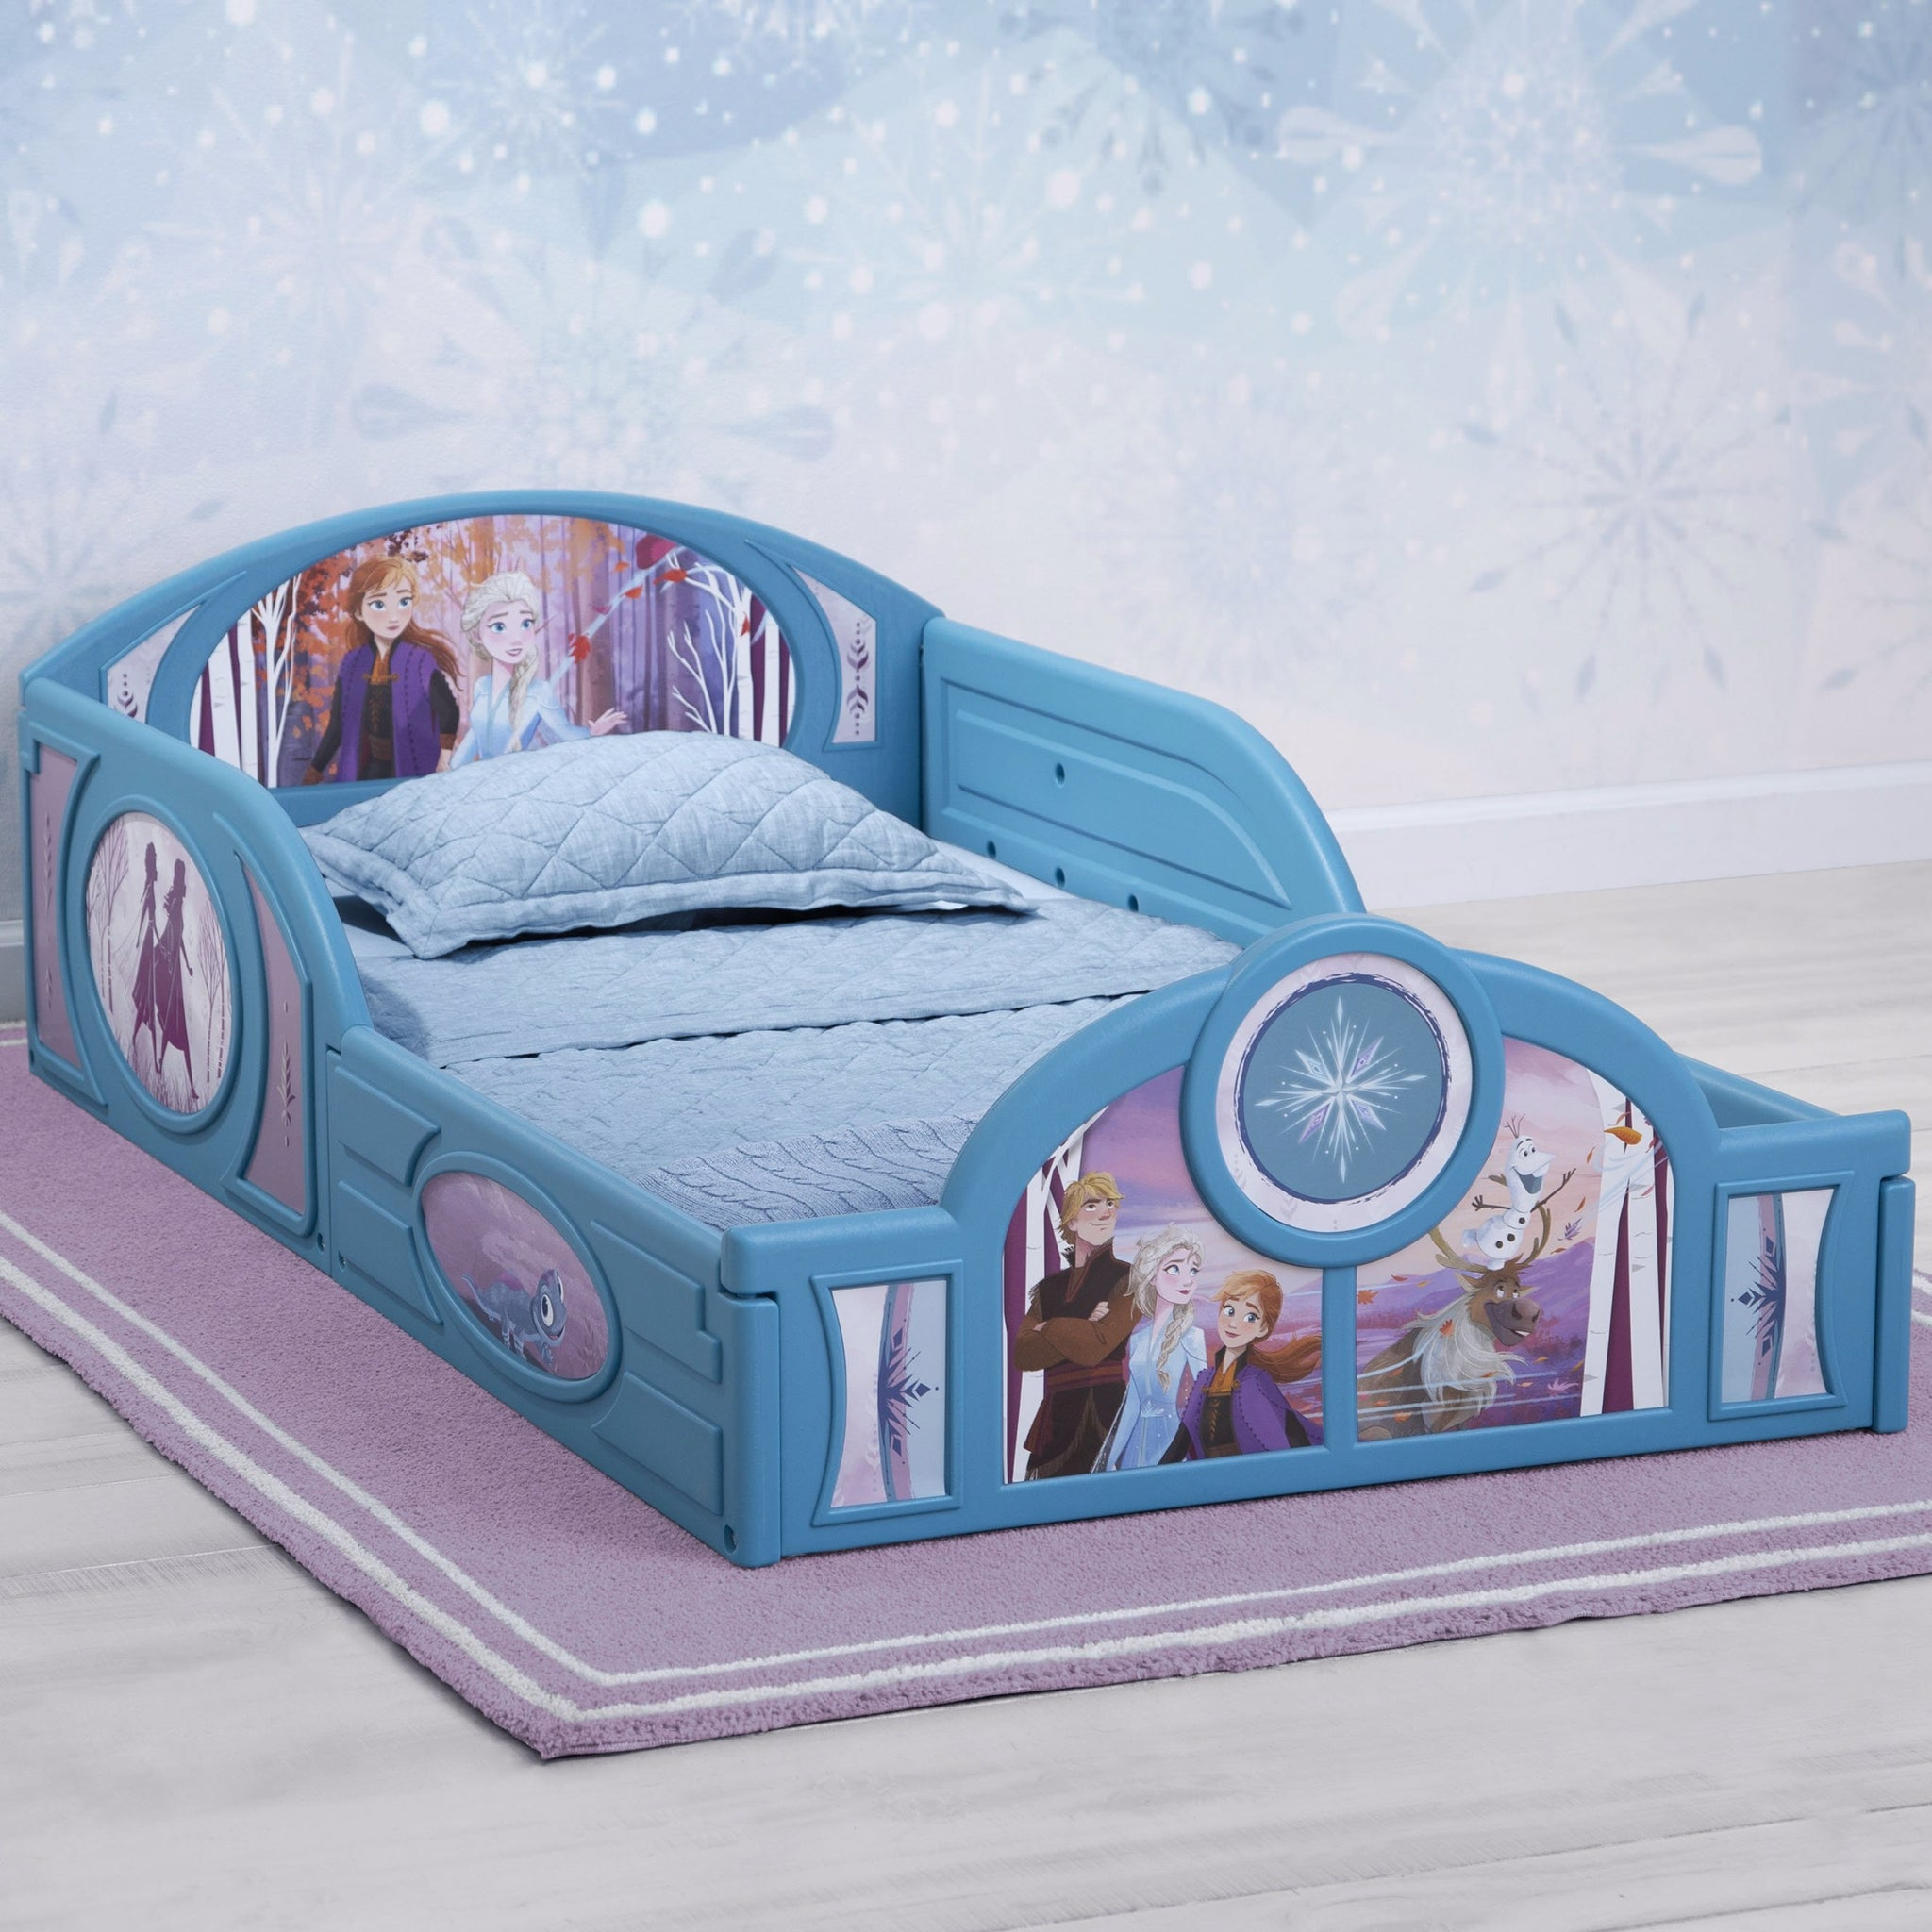 Frozen II Sleep and Play Toddler Bed